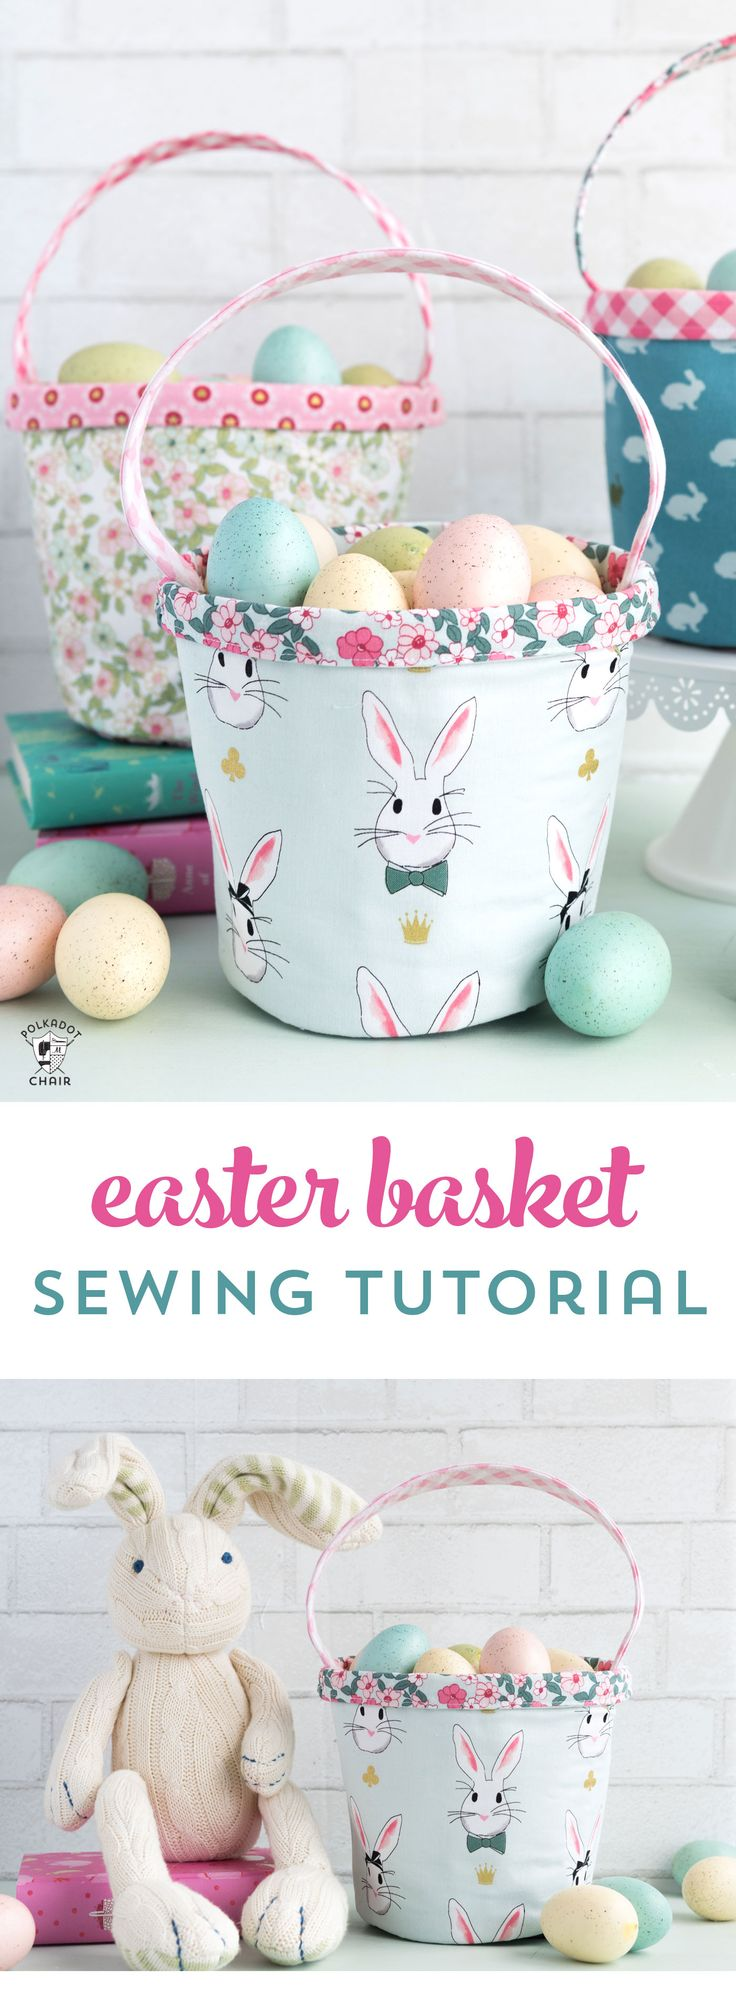 Free Easter Basket sewing tutorial - a cute little fabric basket perfect for Spr...